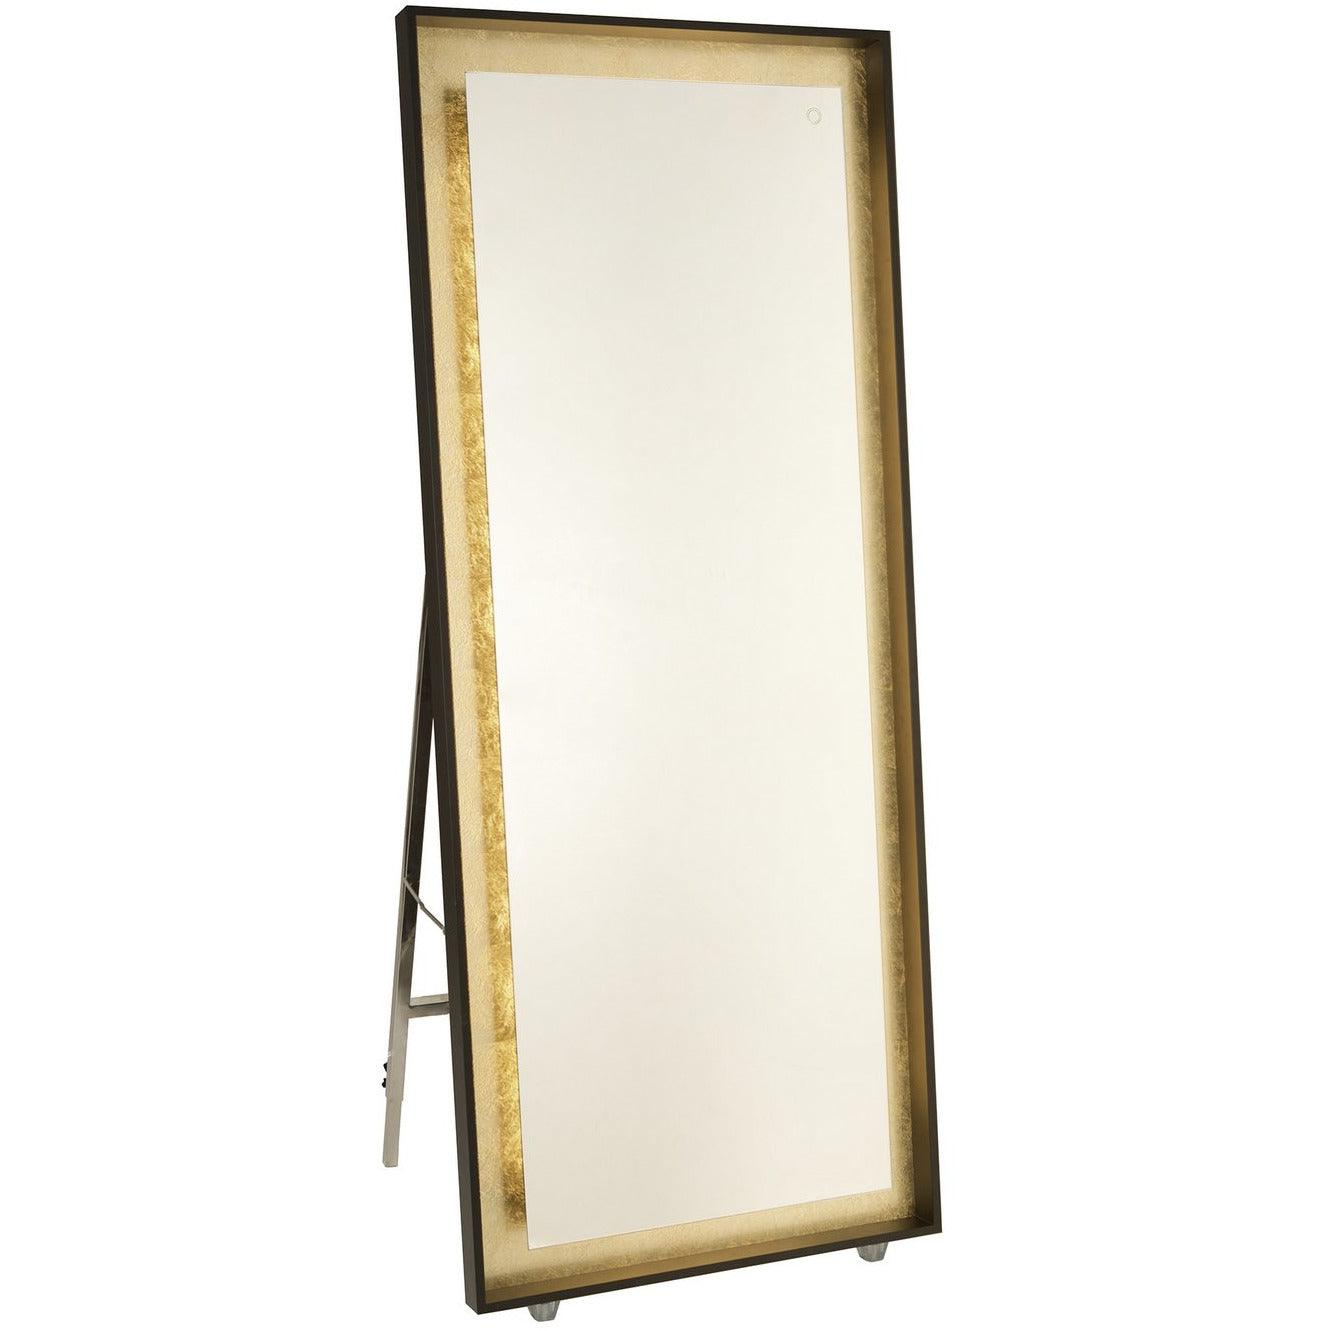 Artcraft Lighting - AM314 - LED Mirror - Reflections - Oil Rubbed Bronze & Gold Leaf